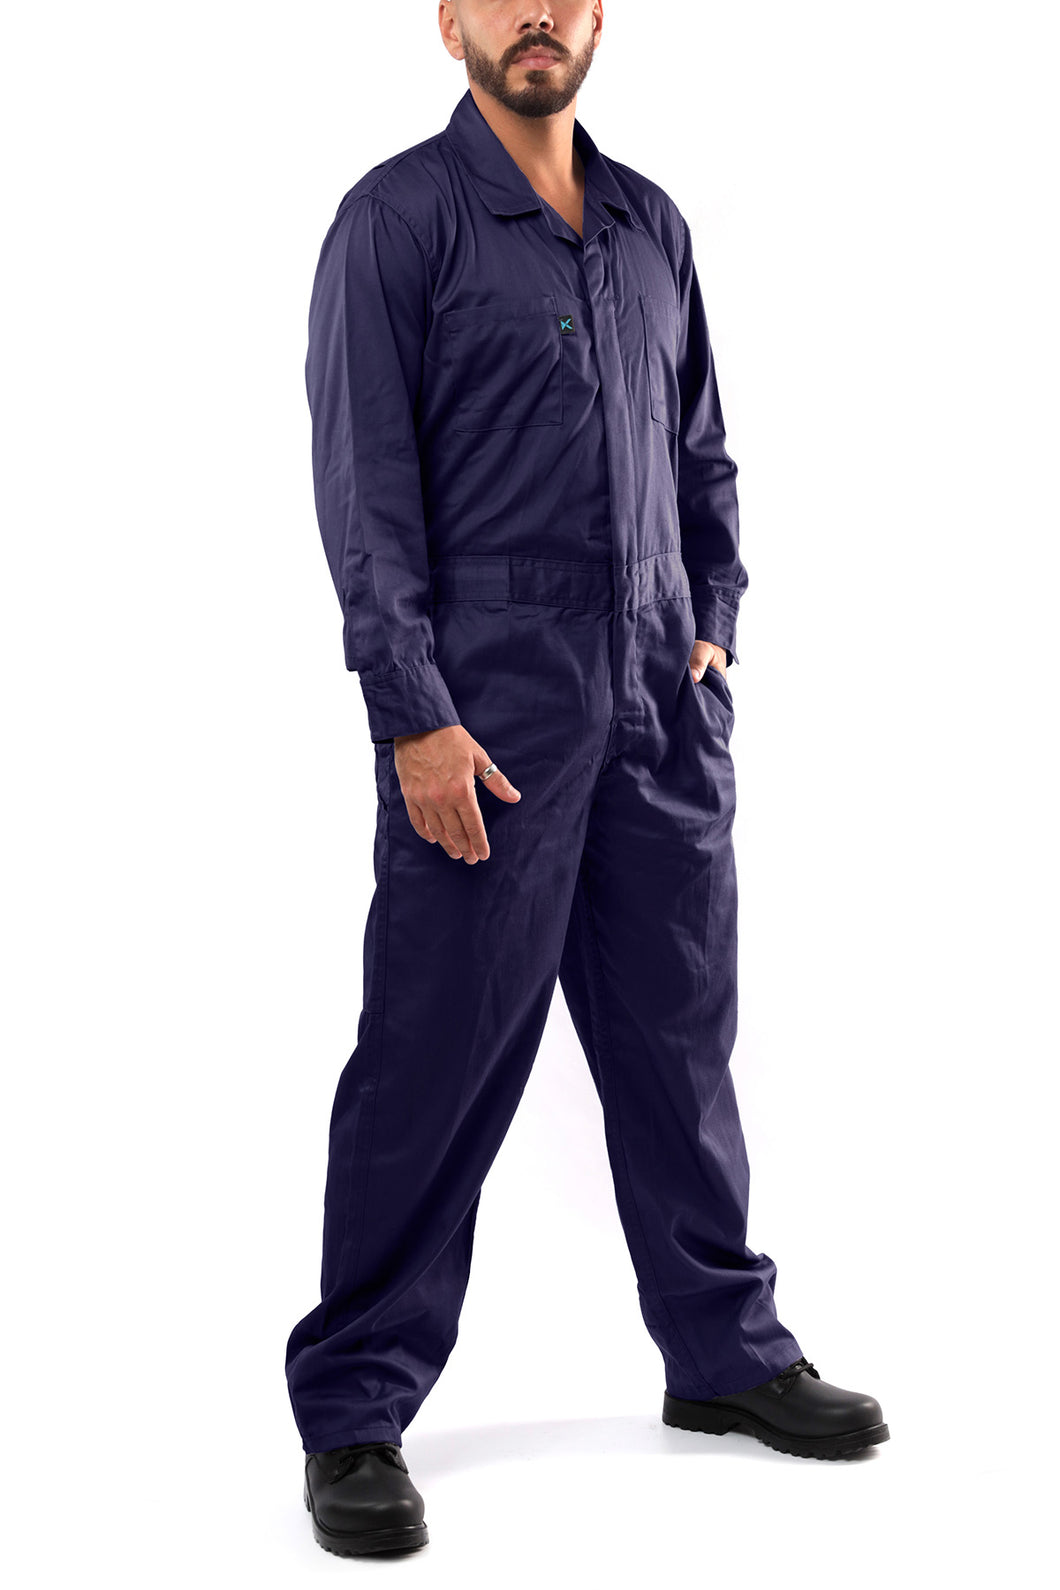 KC03 - Kolossus Deluxe Long Sleeve Cotton Blend Coverall with Multi Pockets and Antistatic Zipper